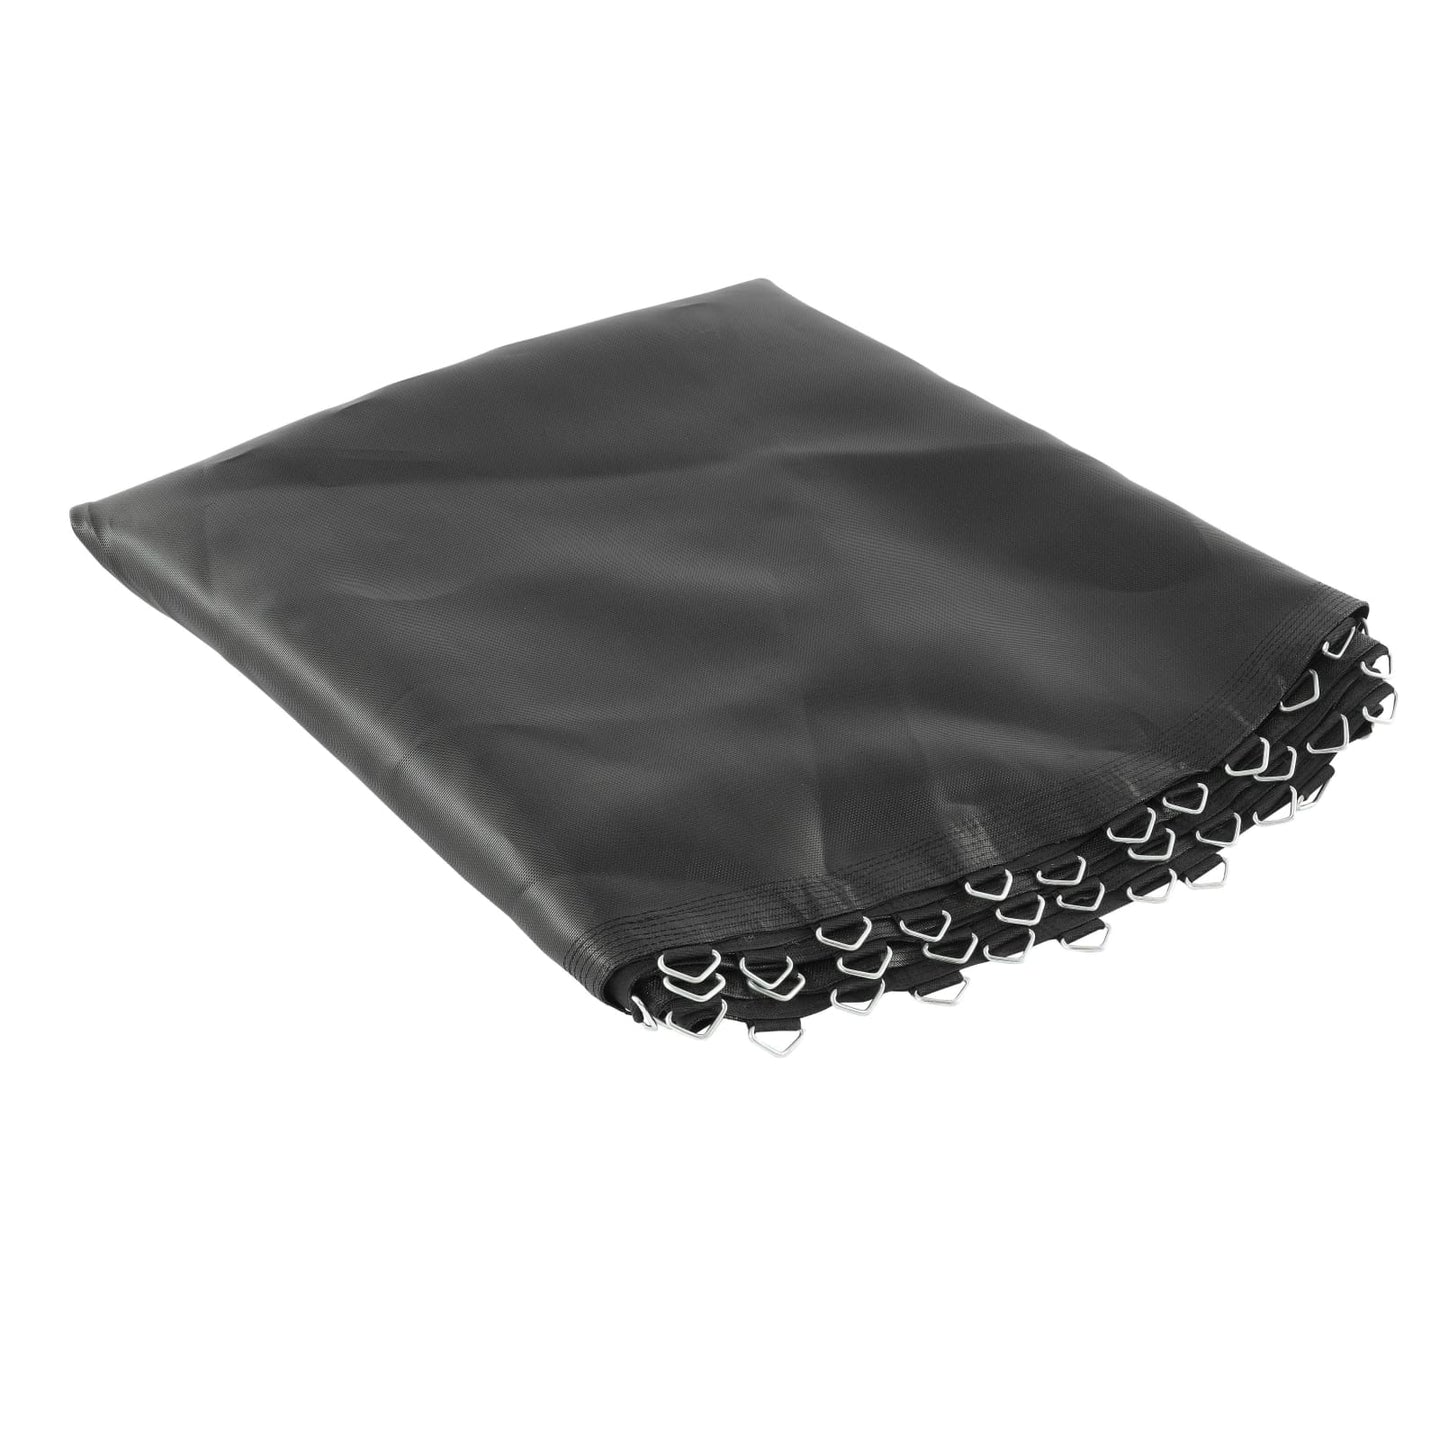 Upper Bounce Trampoline Replacement Jumping Mat Fits For 17 X 15 Ft. Oval Frames W/ 96 V-Rings Using 7 Springs - Trampoline Replacements